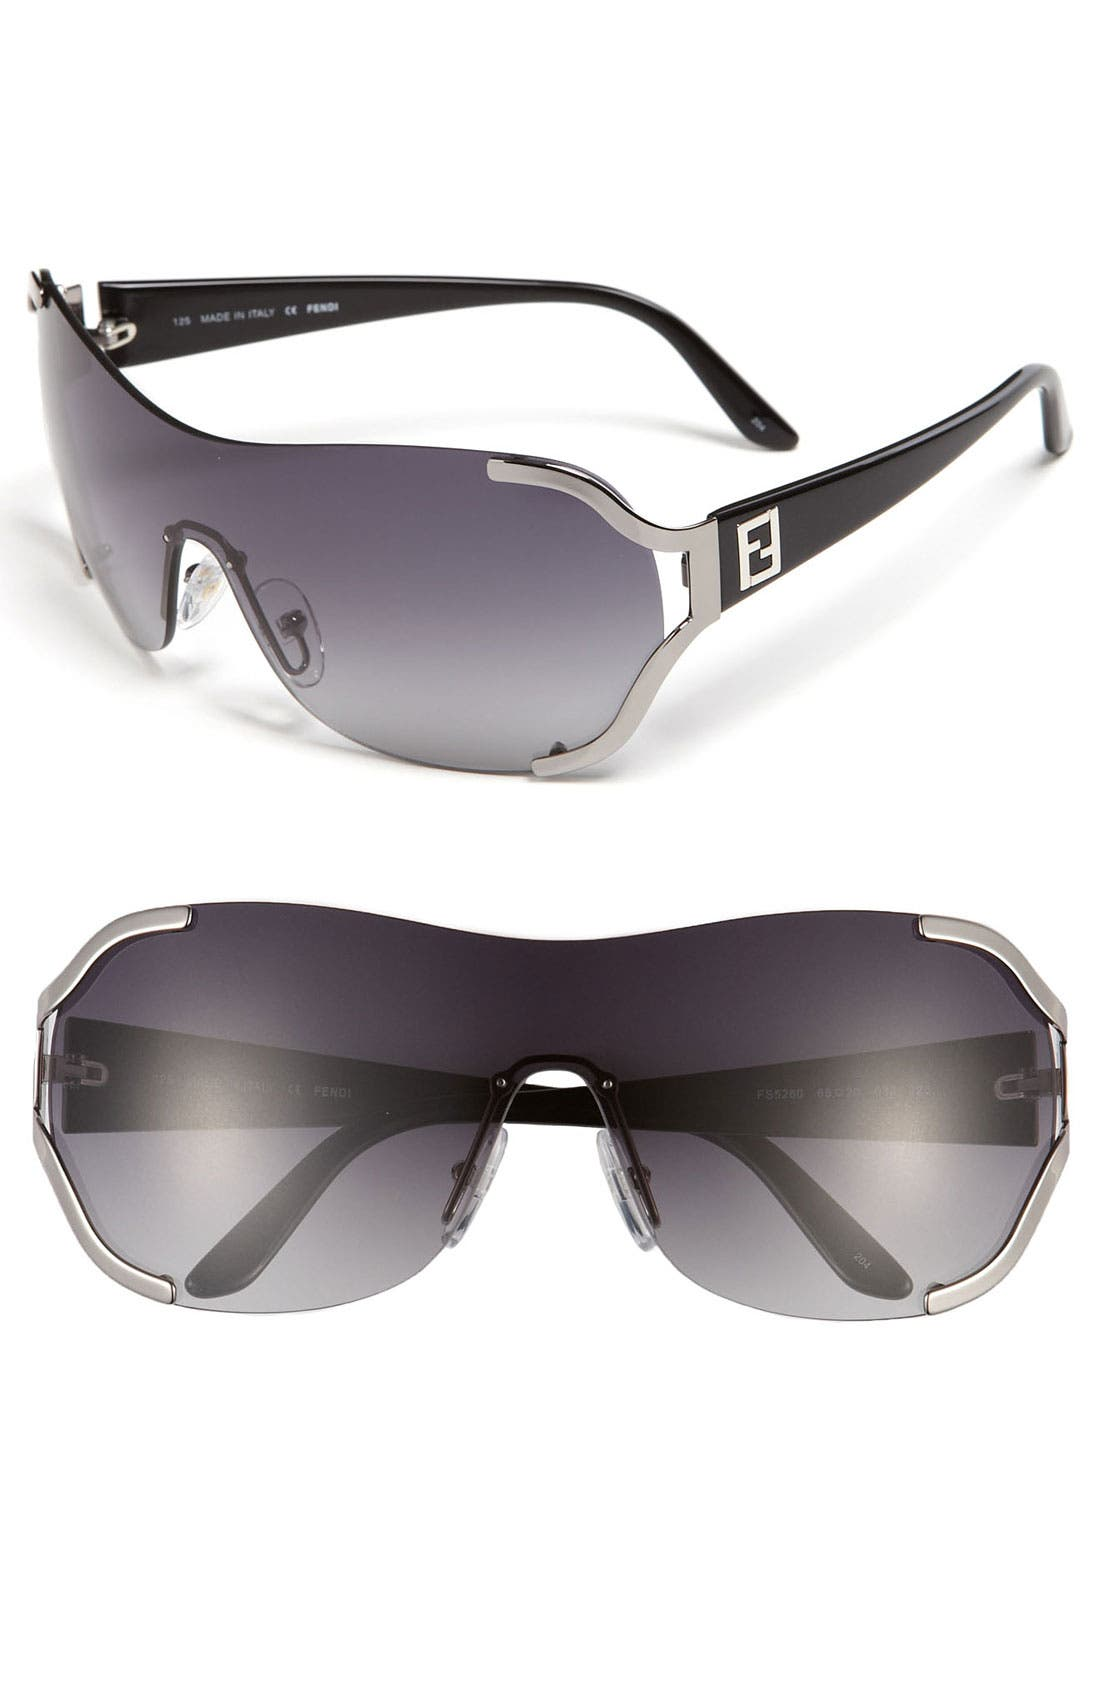 Main Image - Fendi 66mm Metal Shield Sunglasses